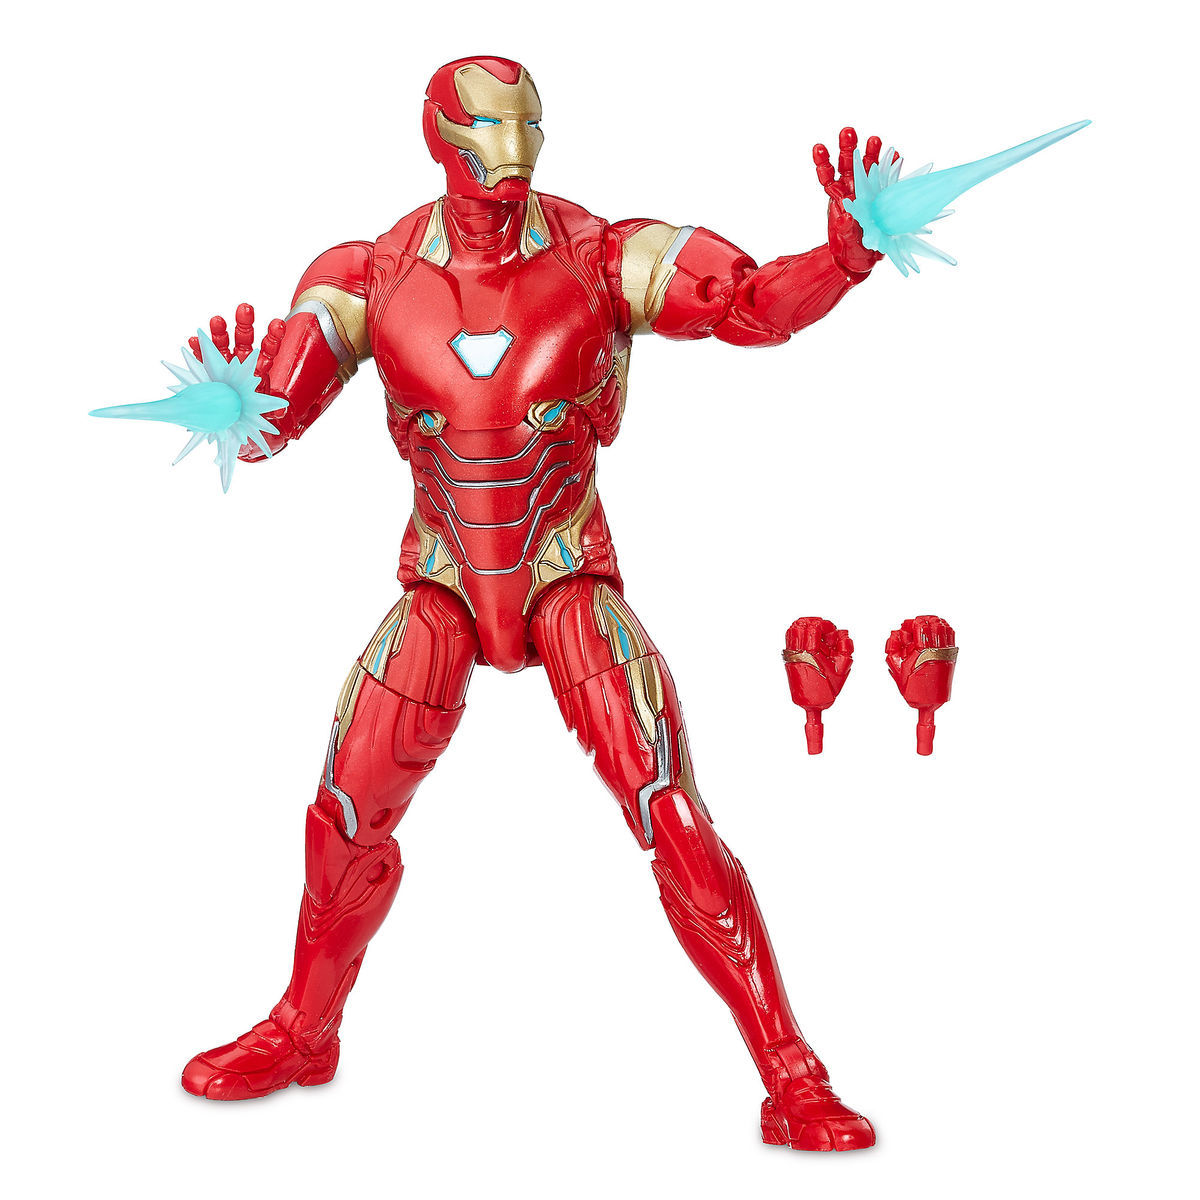 34826f30448a Product Image of Iron Man Action Figure - Marvel s Avengers  Infinity War  Legends Series